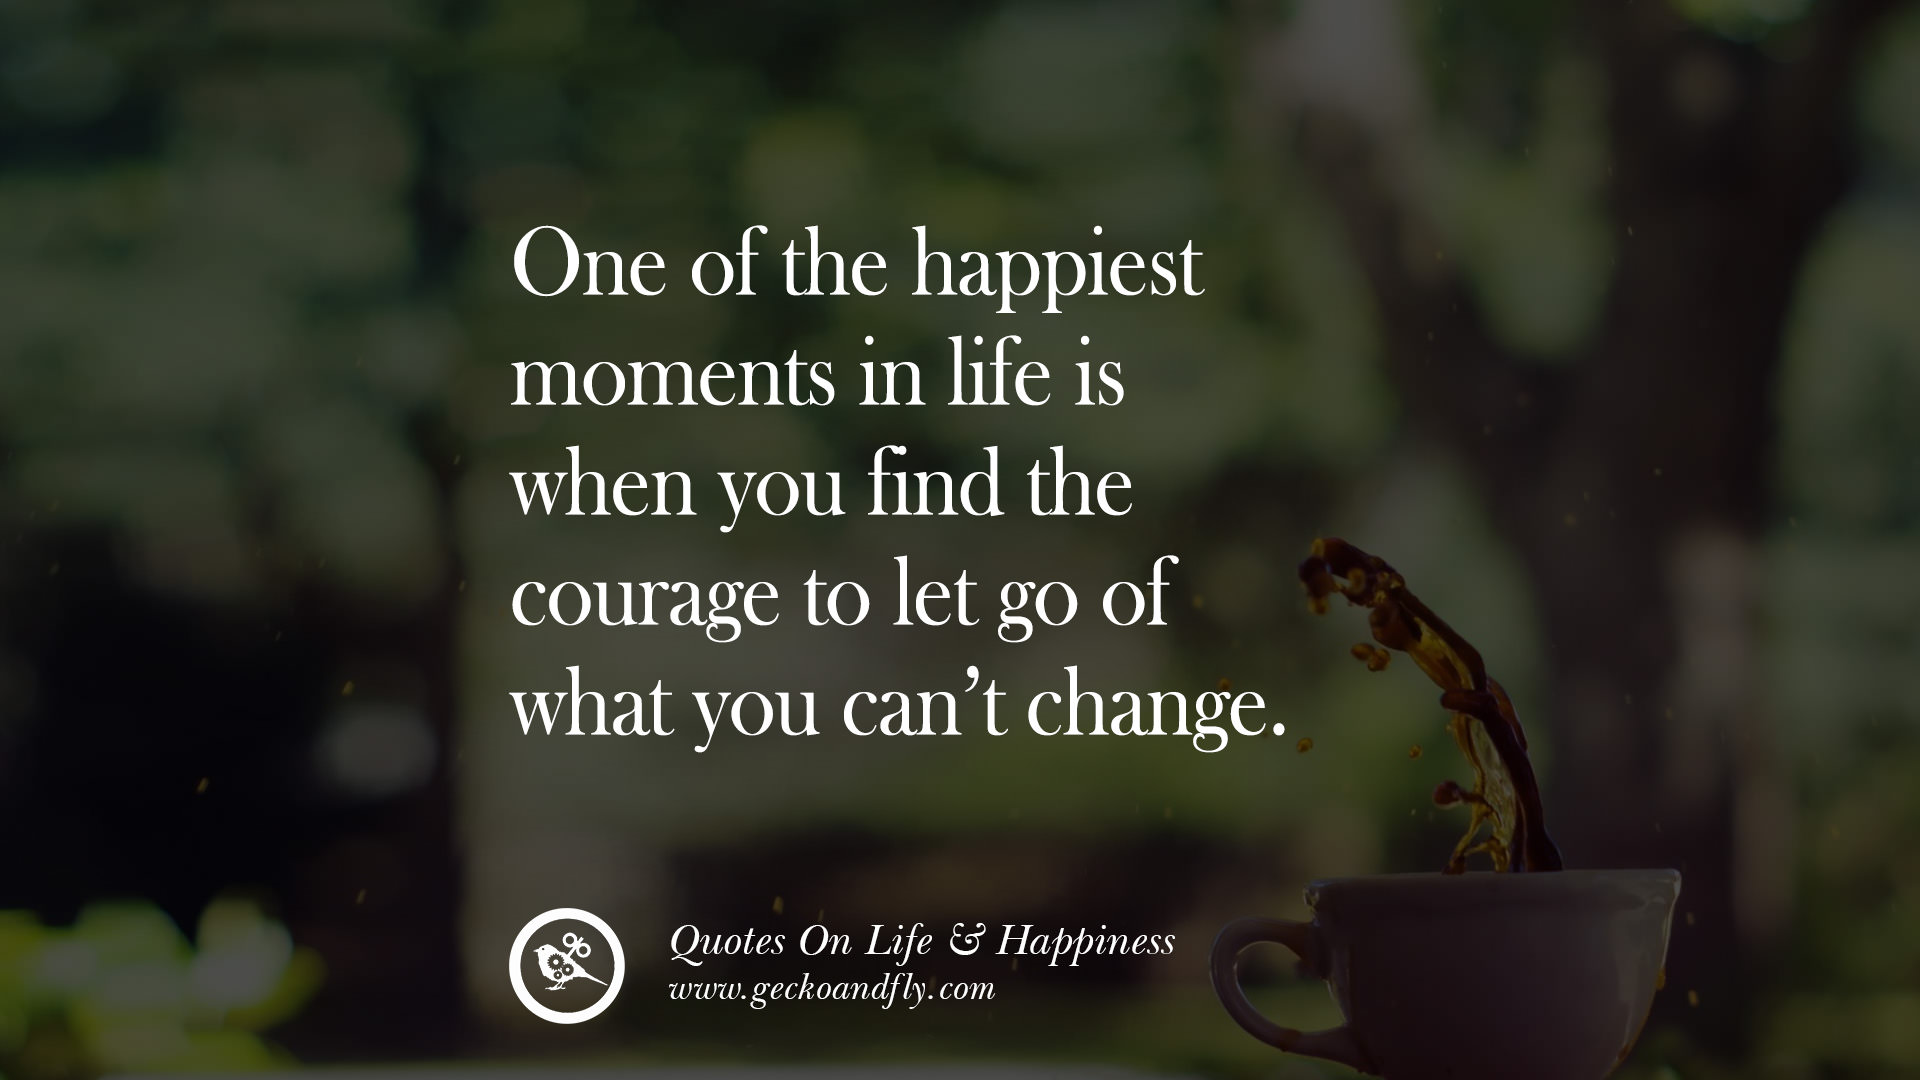 Superbe 16 Uplifting Quotes About Being Happy With Life, Love, Friends, Family And  Yourself